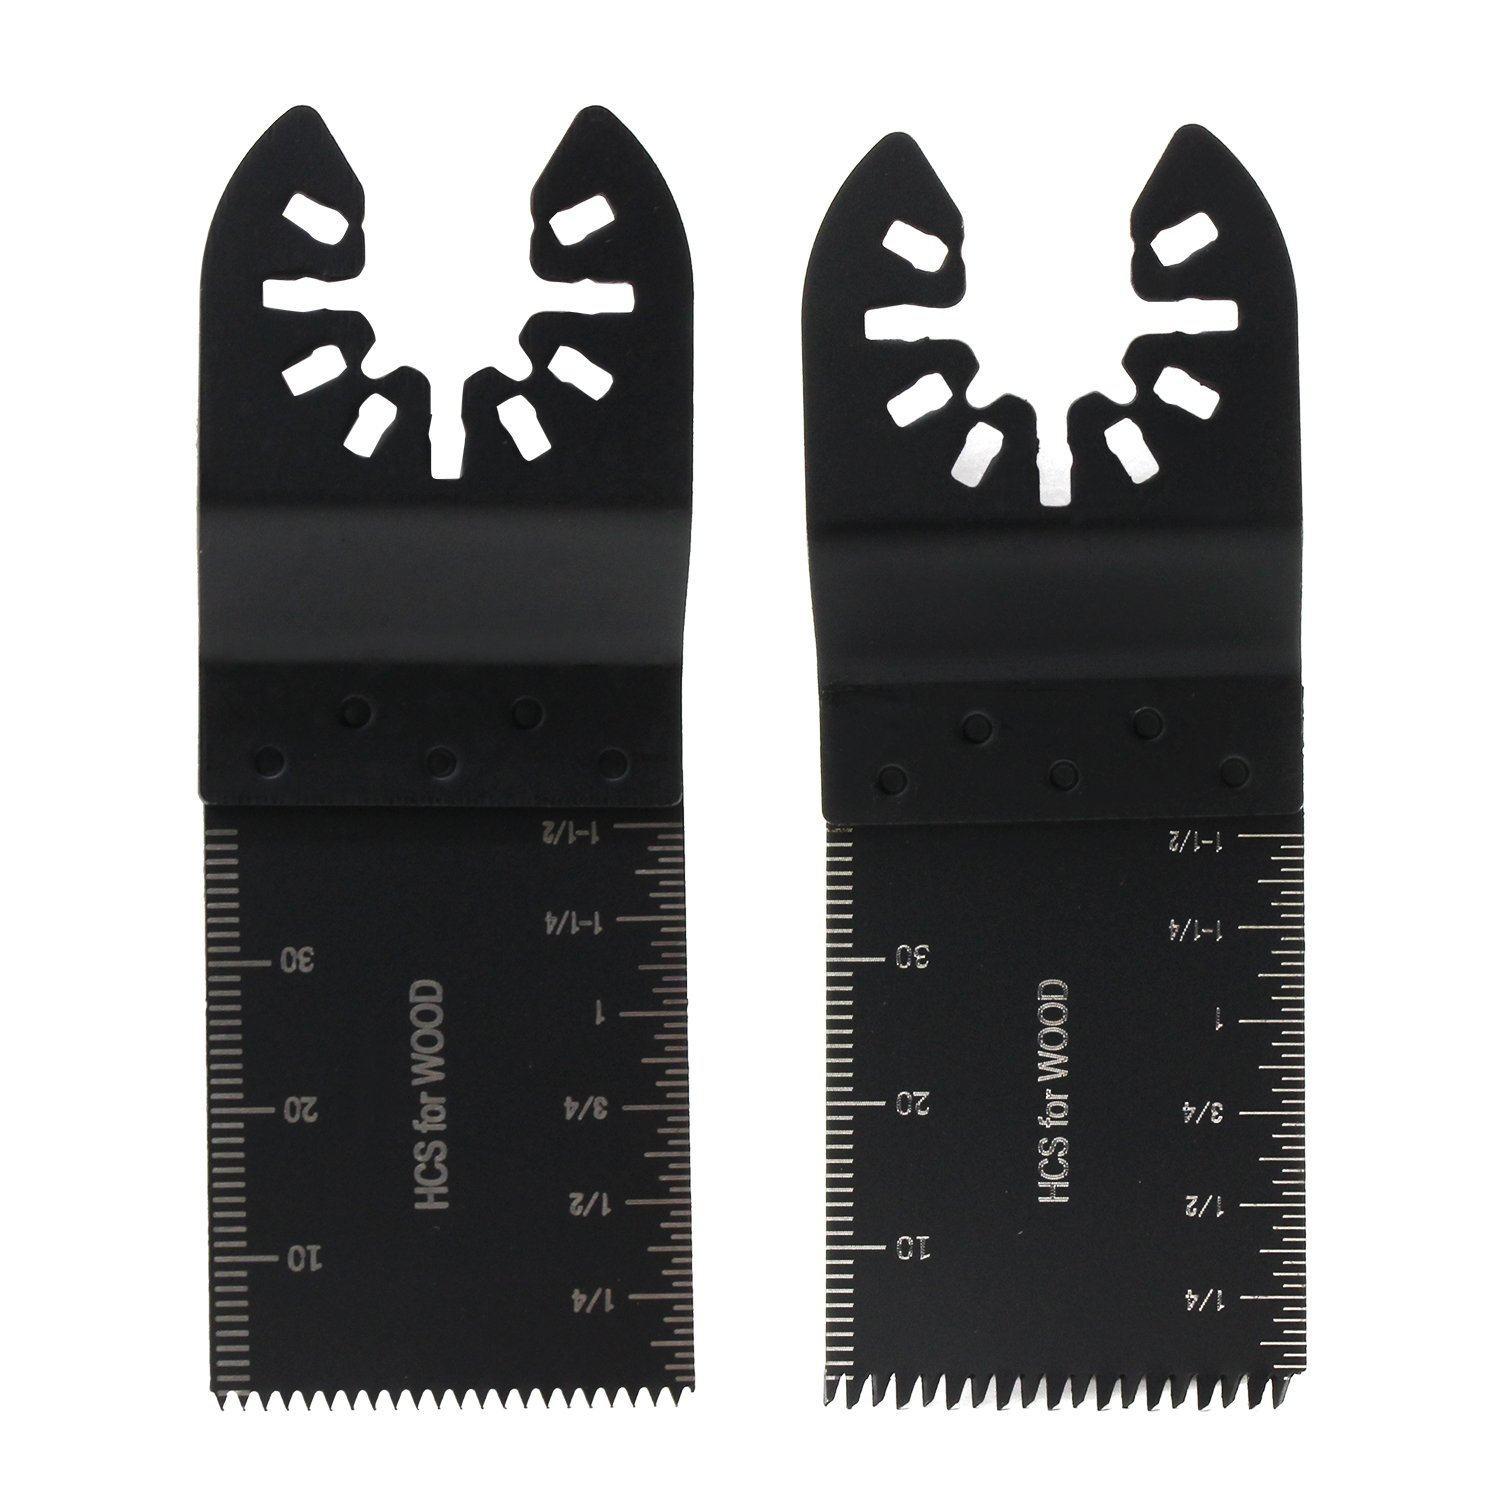 ESUMIC 15Pcs Oscillating Saw Blade Grinding Rasp Kit for RockWell Sonicrafter Work Oscillating Multitool Accesory by ESUMIC (Image #6)